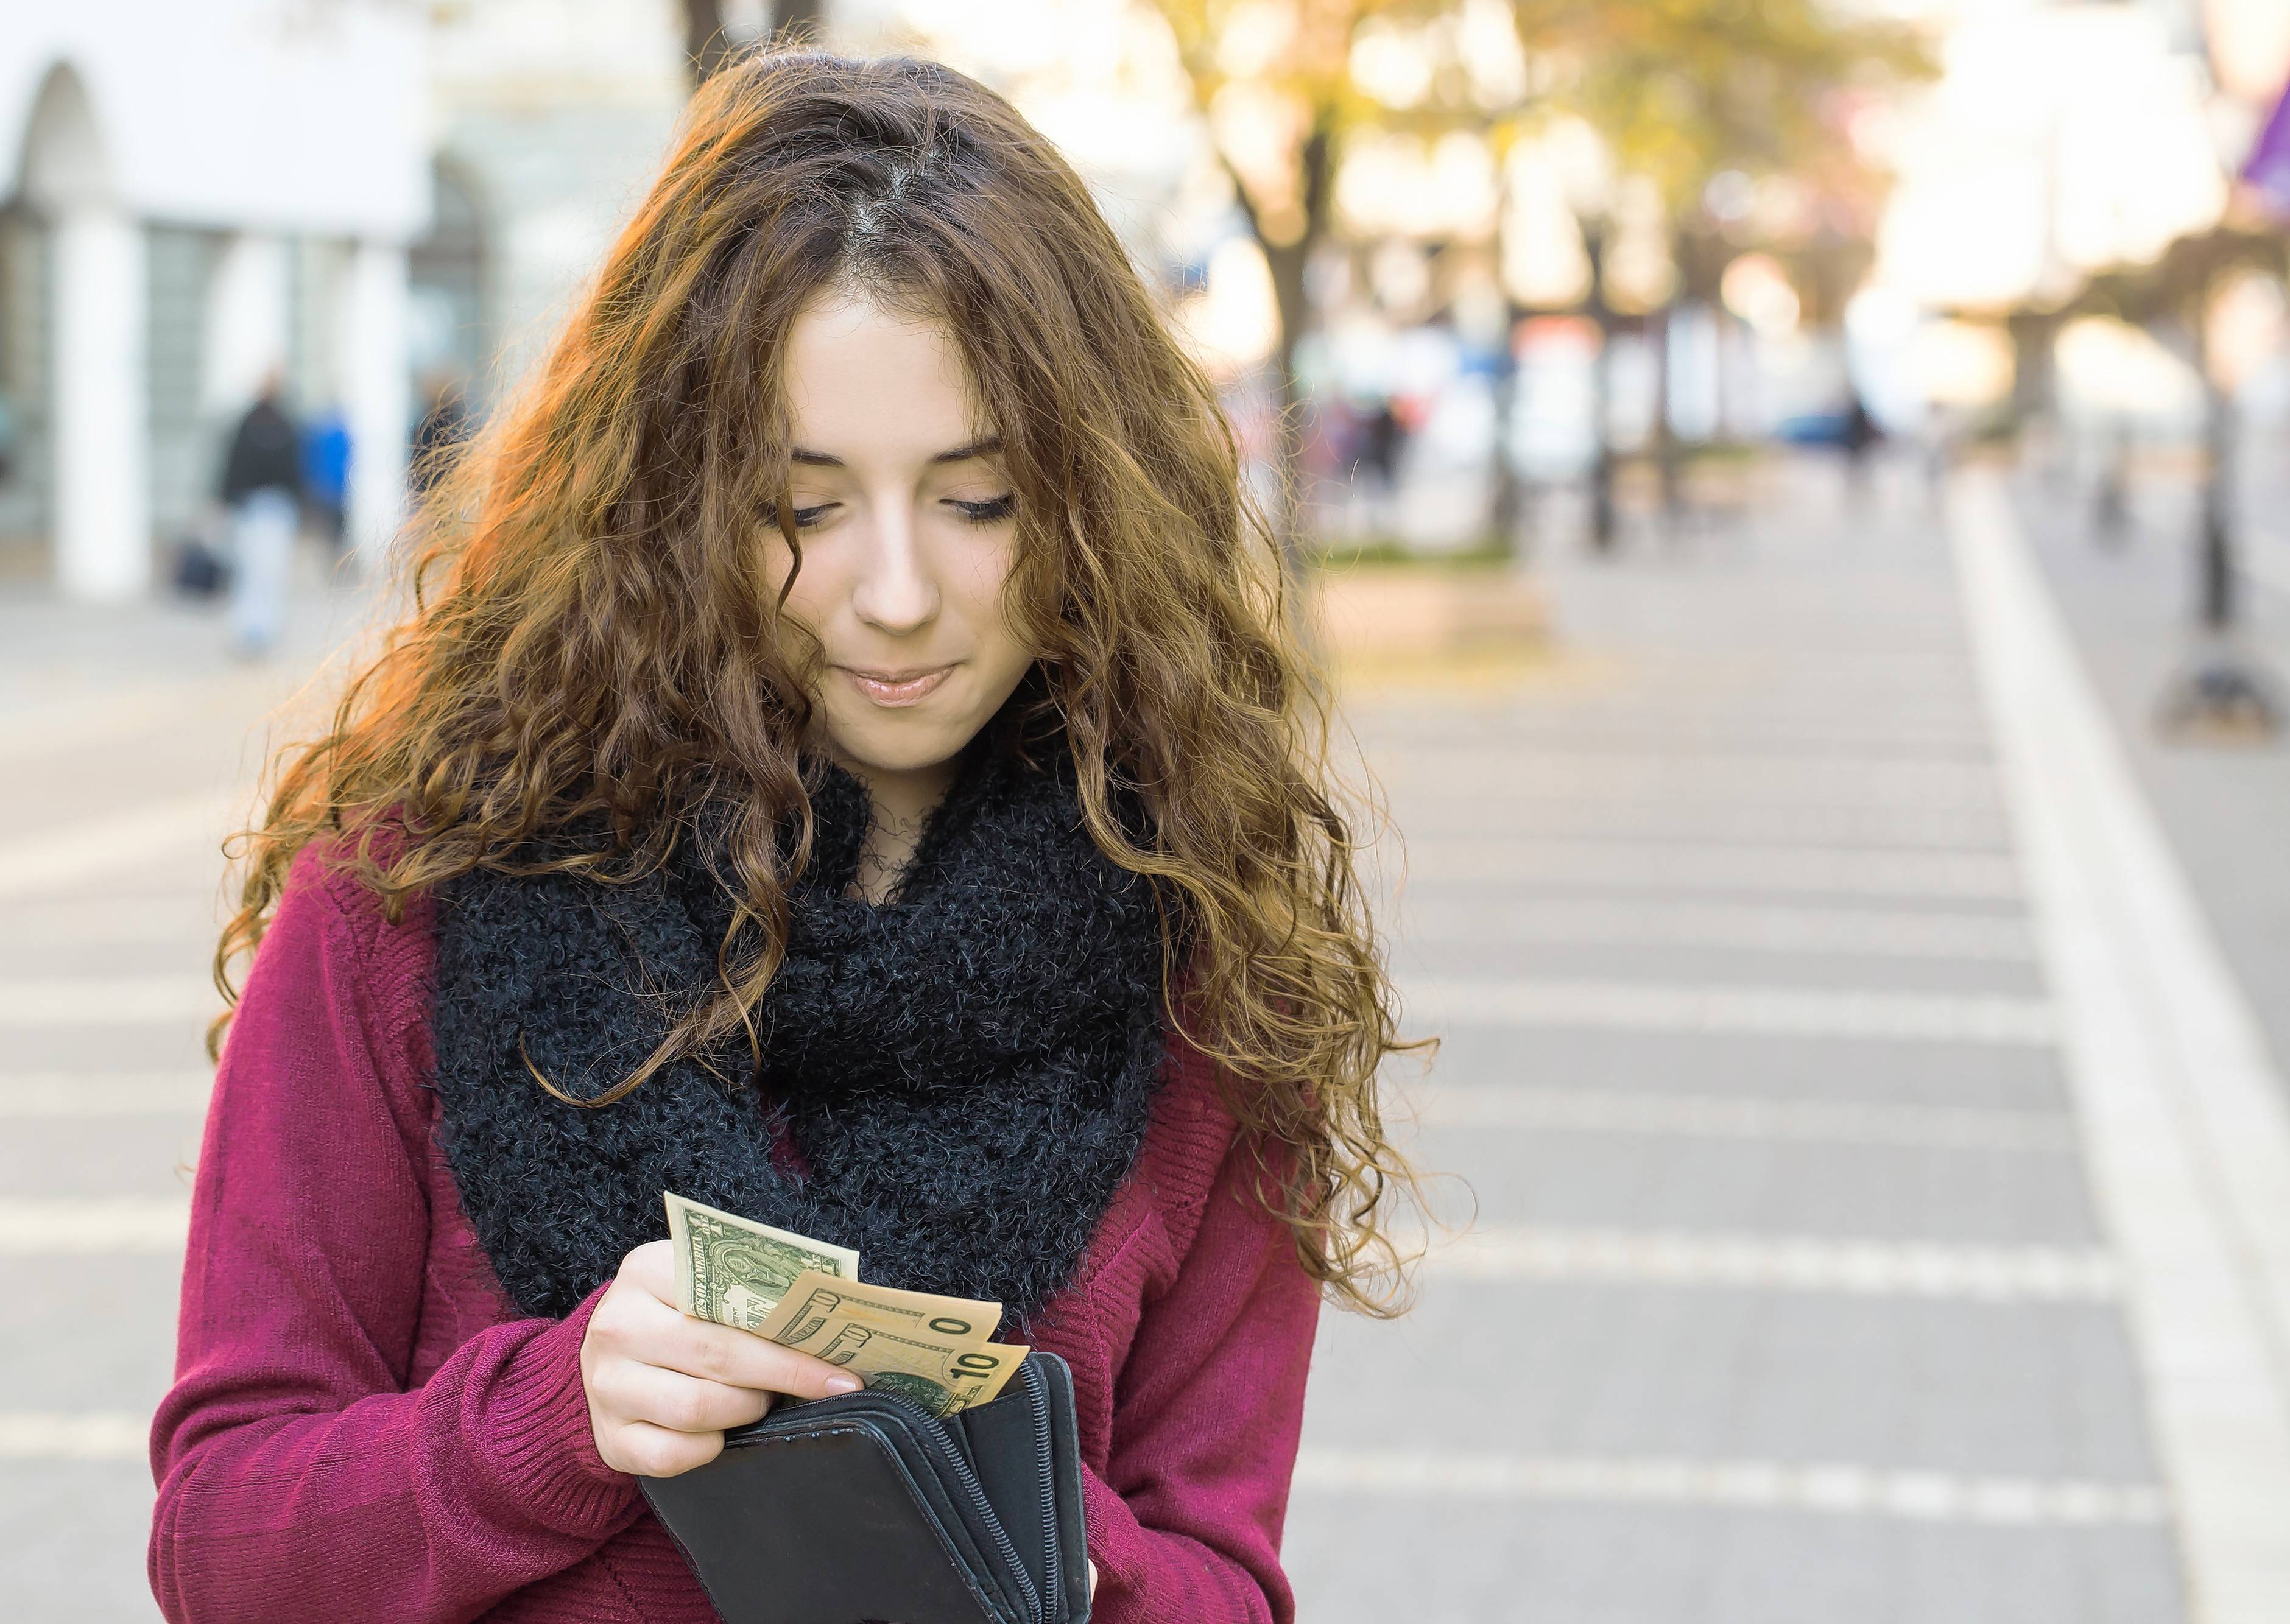 The problem with weekly or even monthly allowances is that the cash simply comes too often. If your kid blows hers, she just has to wait a little while to get more. Less frequent lump sums, on the other hand, can teach teenagers how to plan and save for future expenses -- two crucial habits they'll need to get ahead financially.